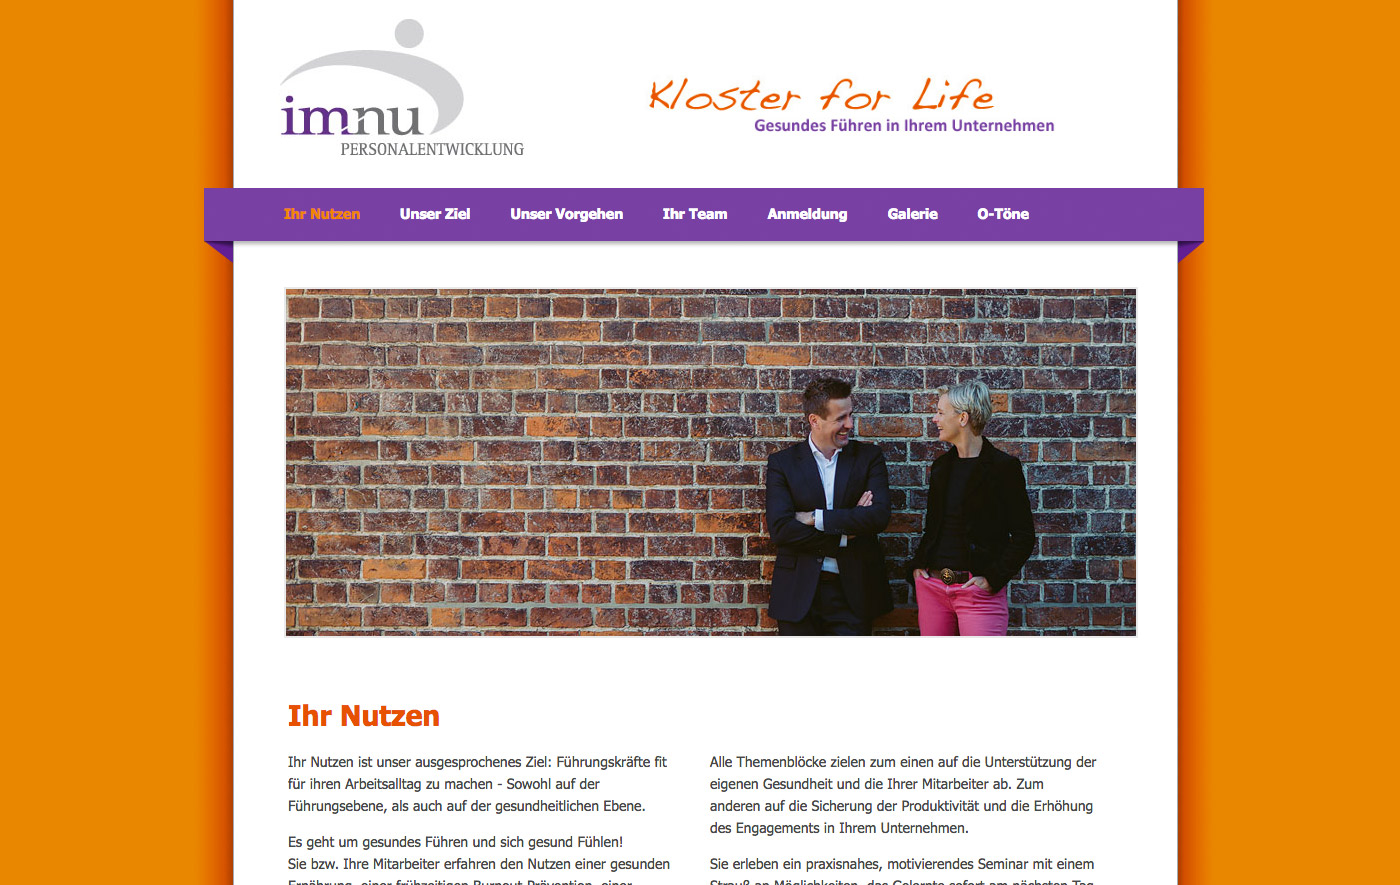 imnu - Kloster for Life